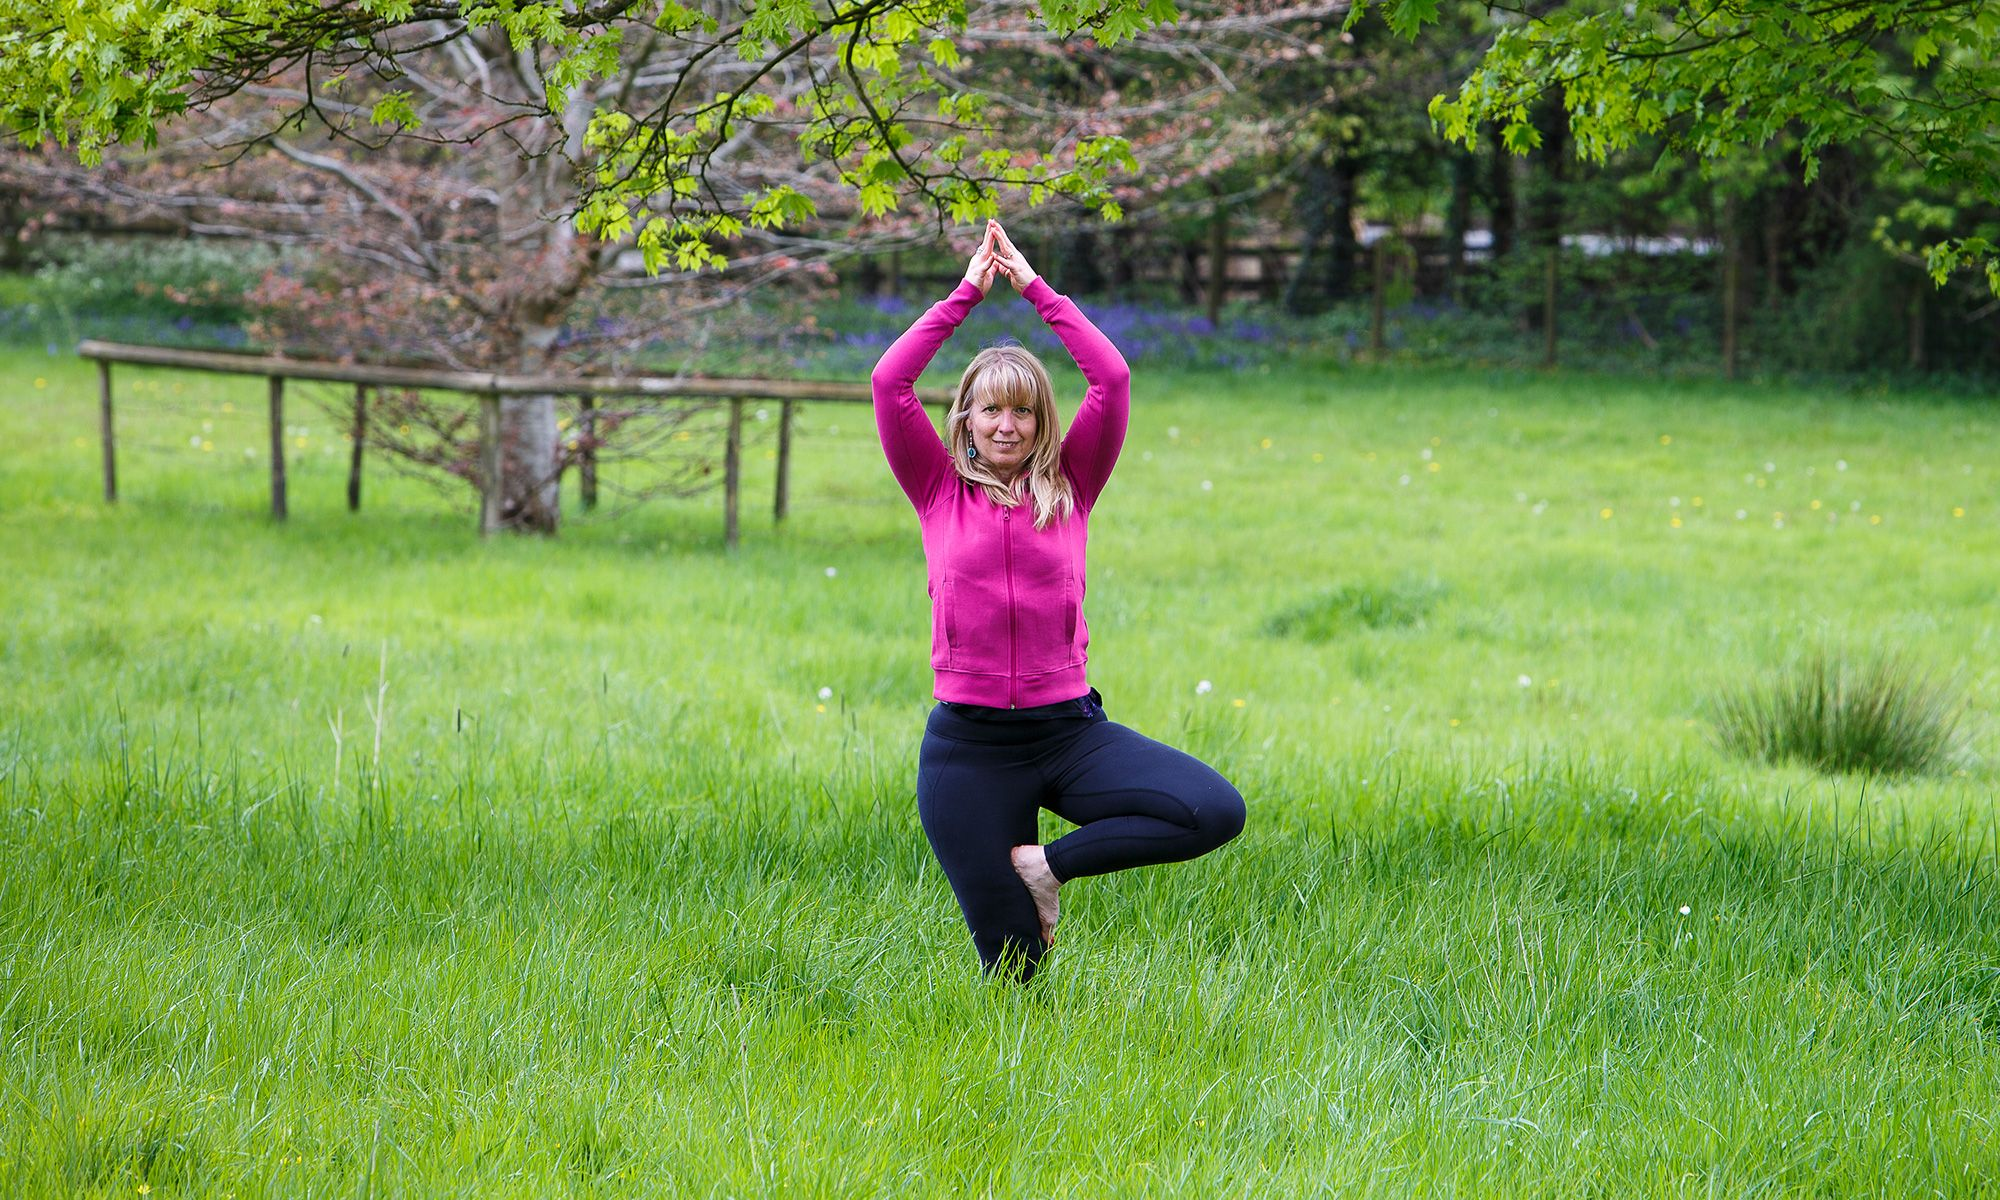 Zoga Yoga - Tree pose amongst the trees and bluebells